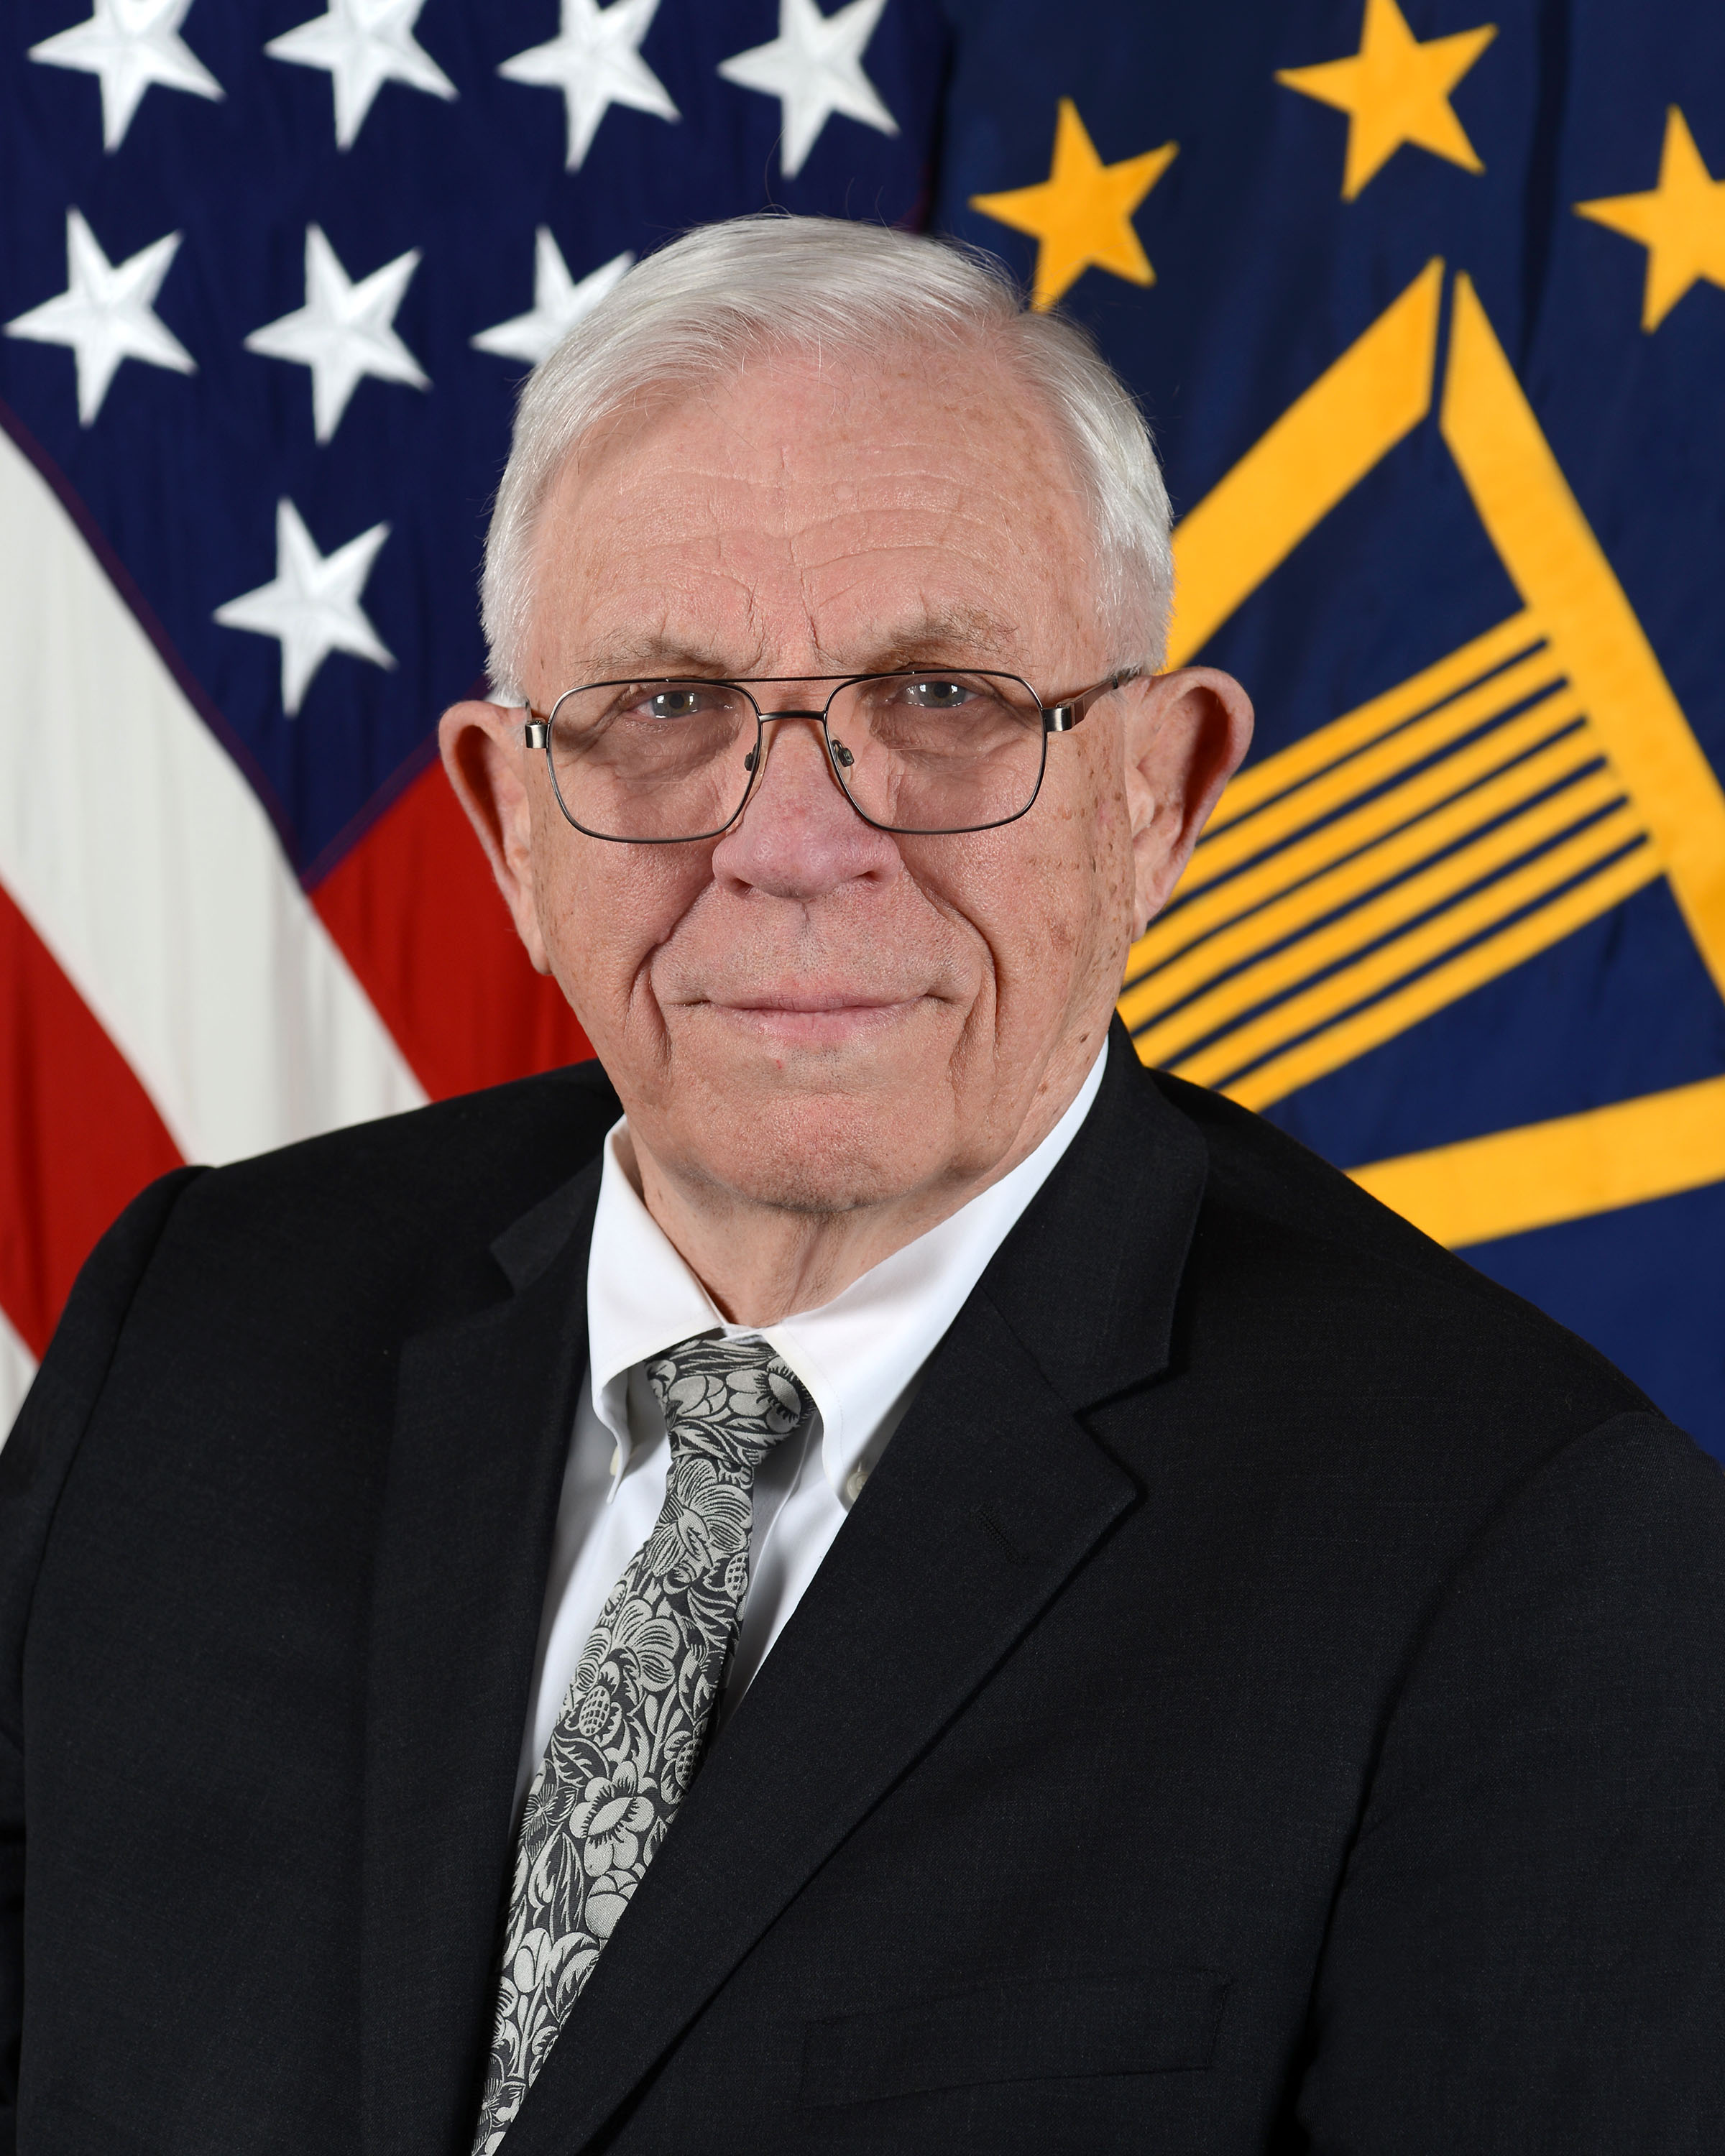 Assistant Secretary of Defense for Research and Engineering (ASD(R&E))